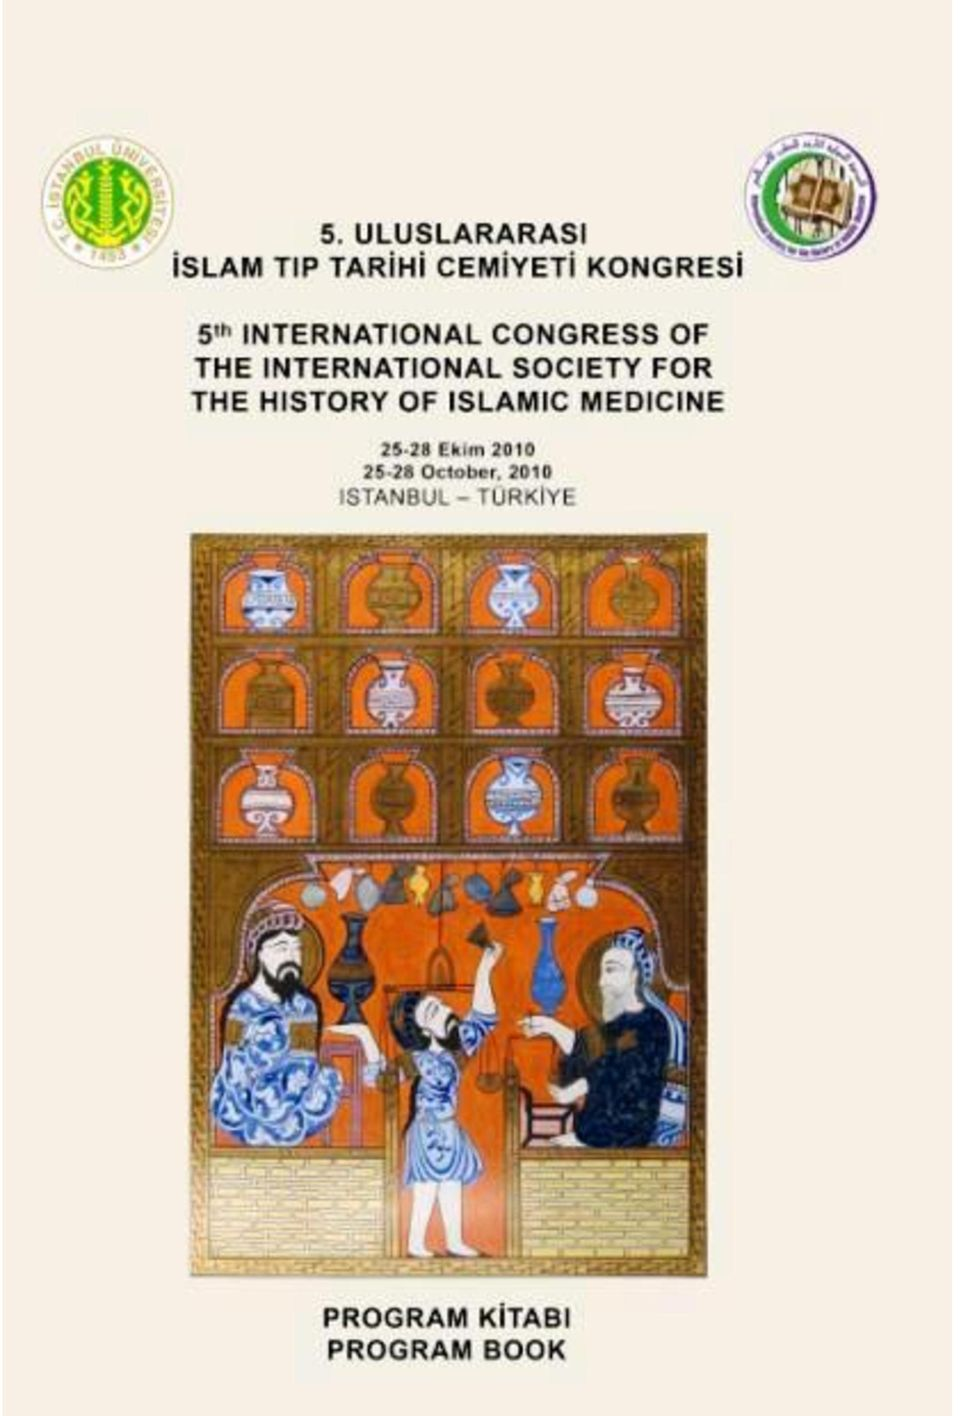 THE HISTORY OF ISLAMIC MEDICINE